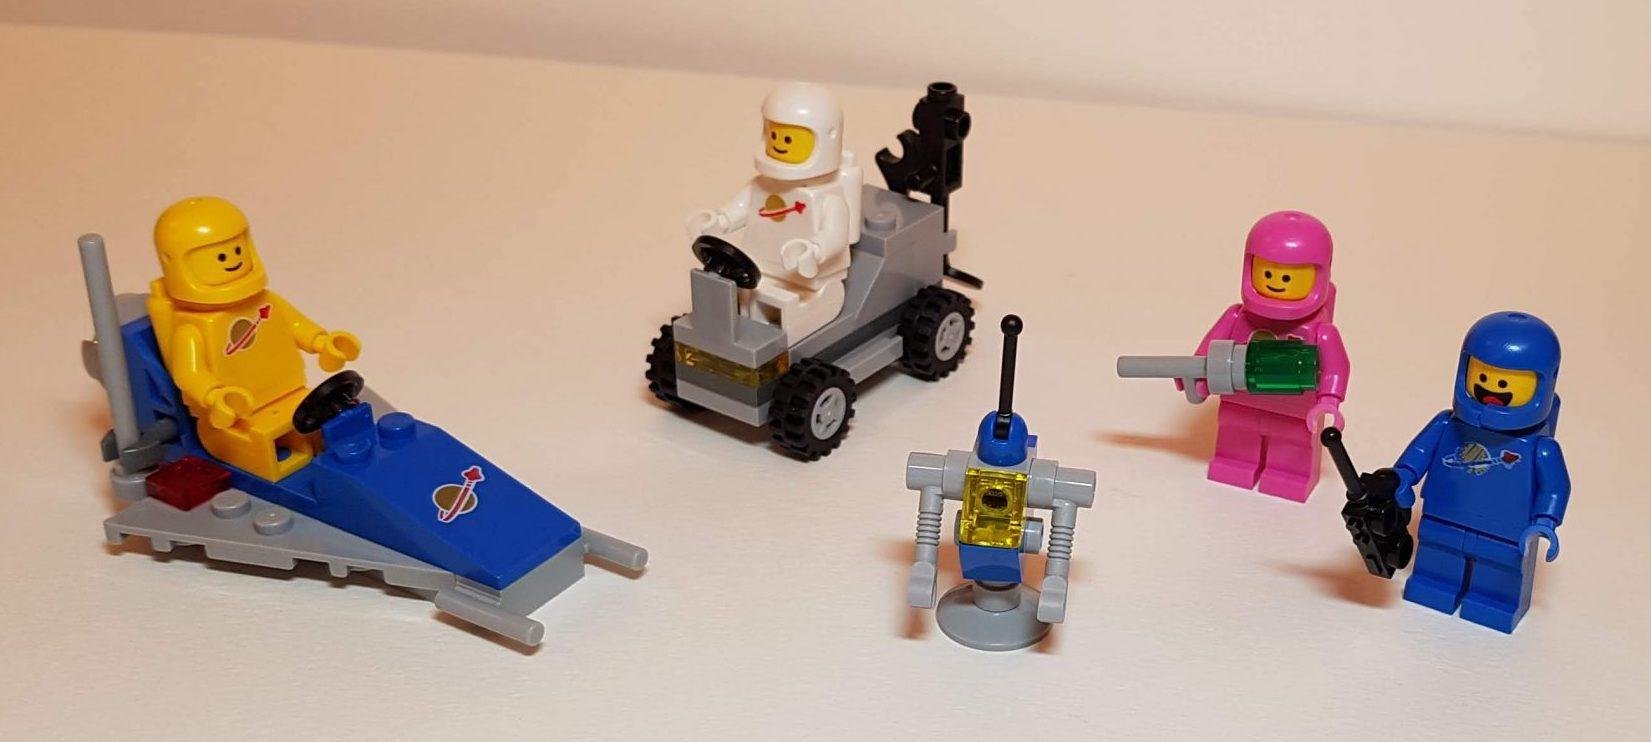 Benny's Space Squad (LEGO 70841) - View 1 - Built By Wright Built